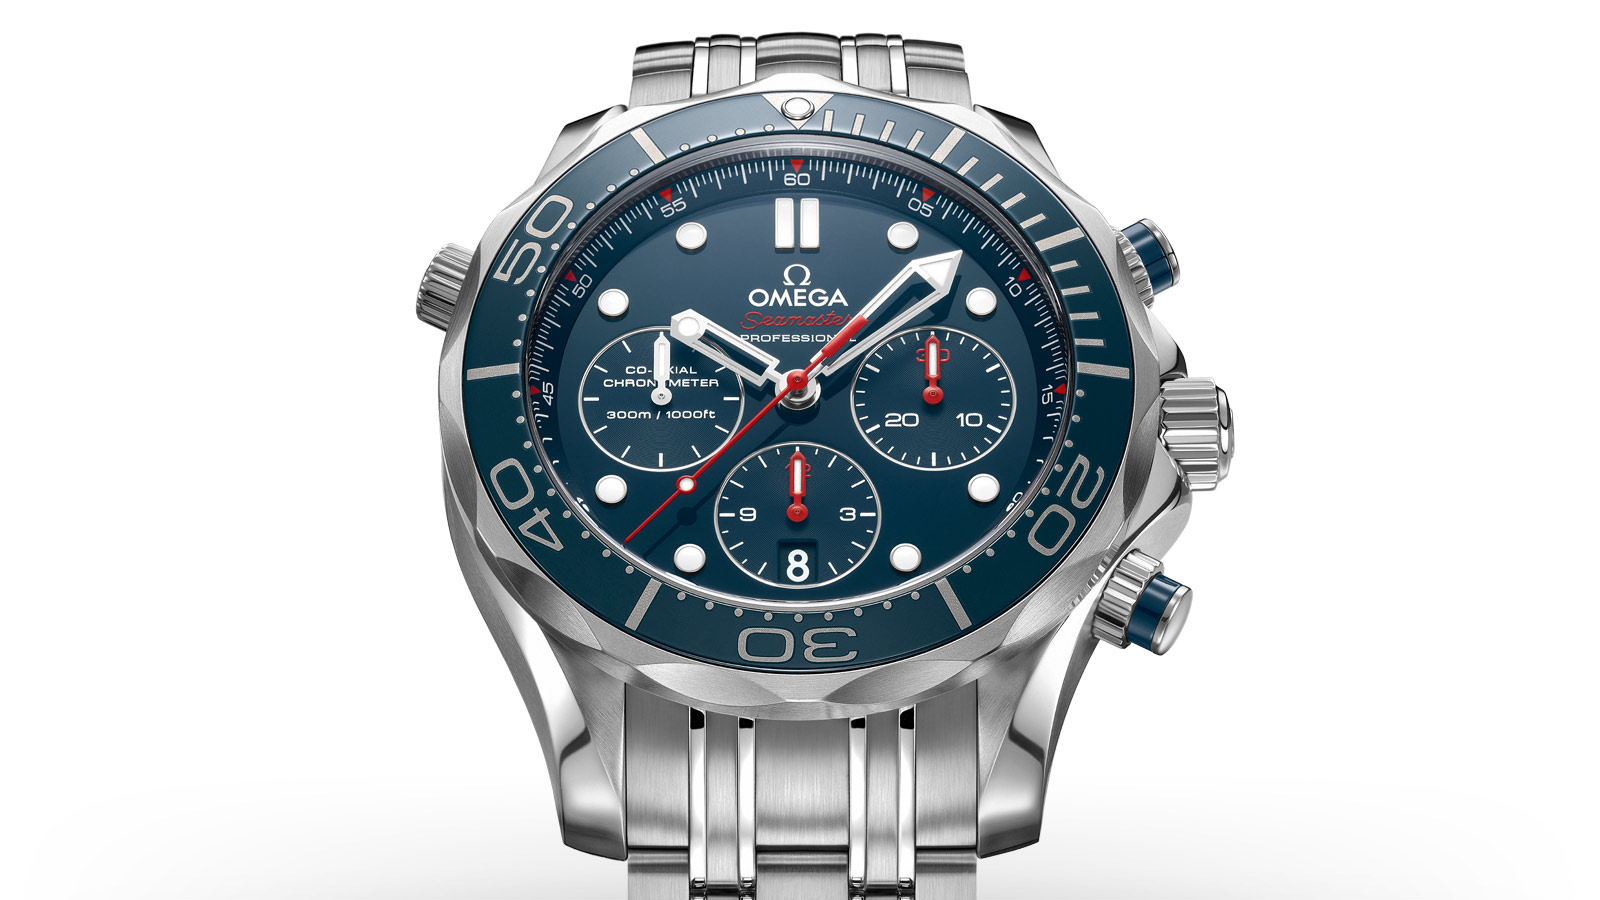 Omega Seamaster Diver 300M Replica Watches